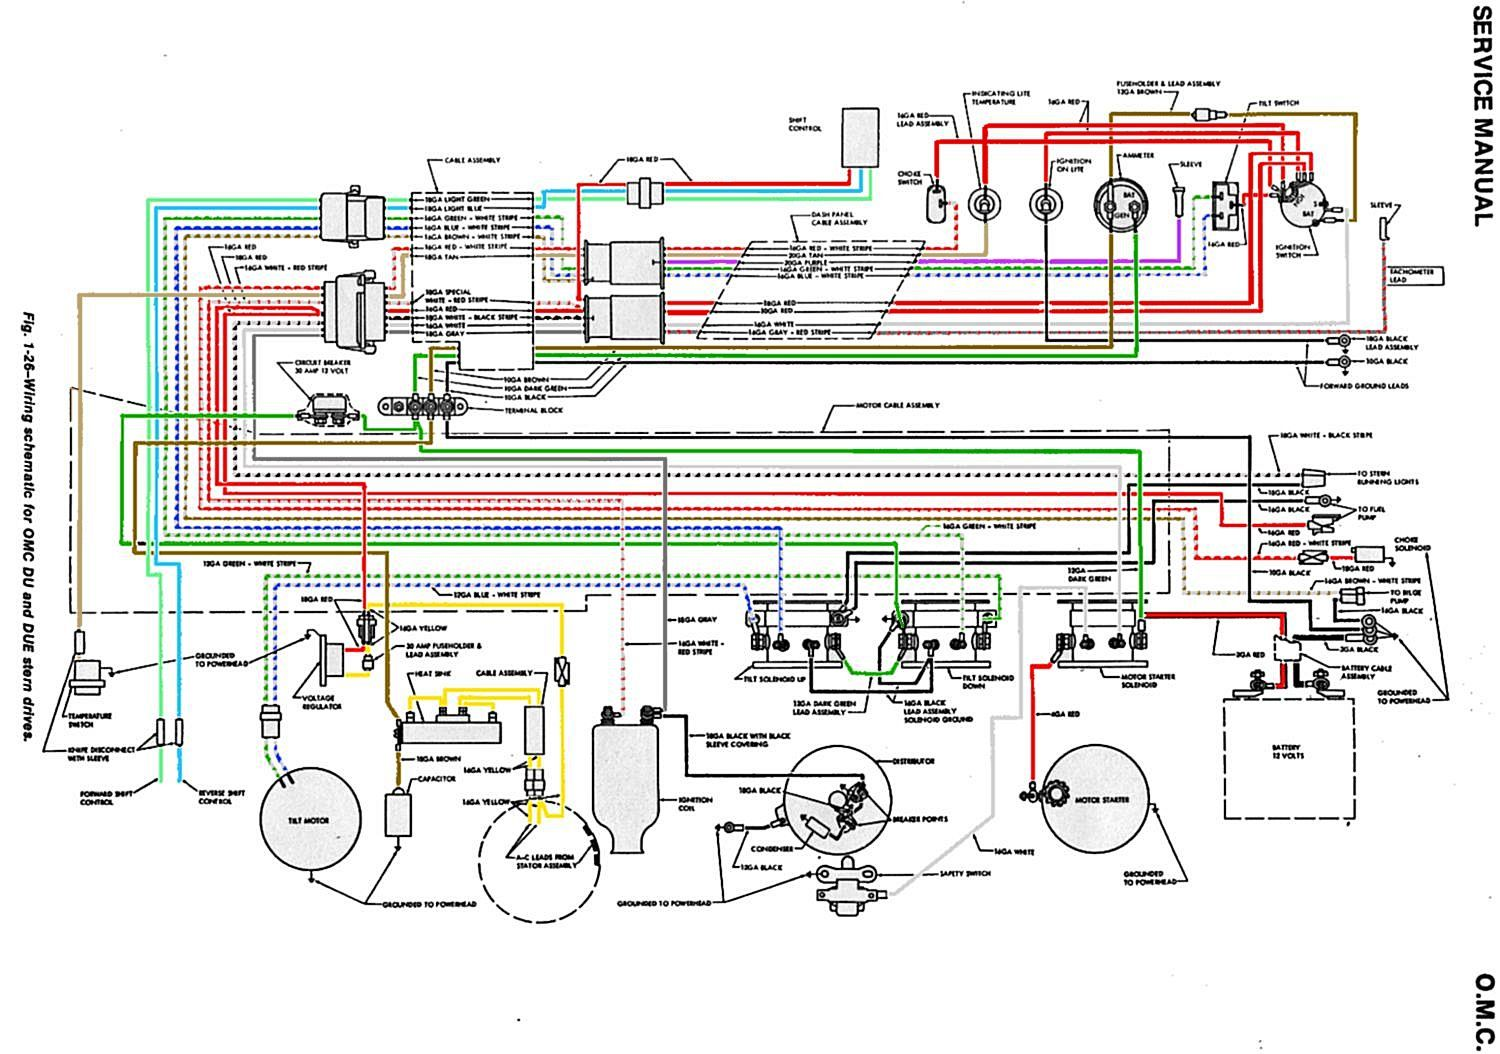 omc wiring schematic electrical diagrams forum u2022 rh woollenkiwi co uk